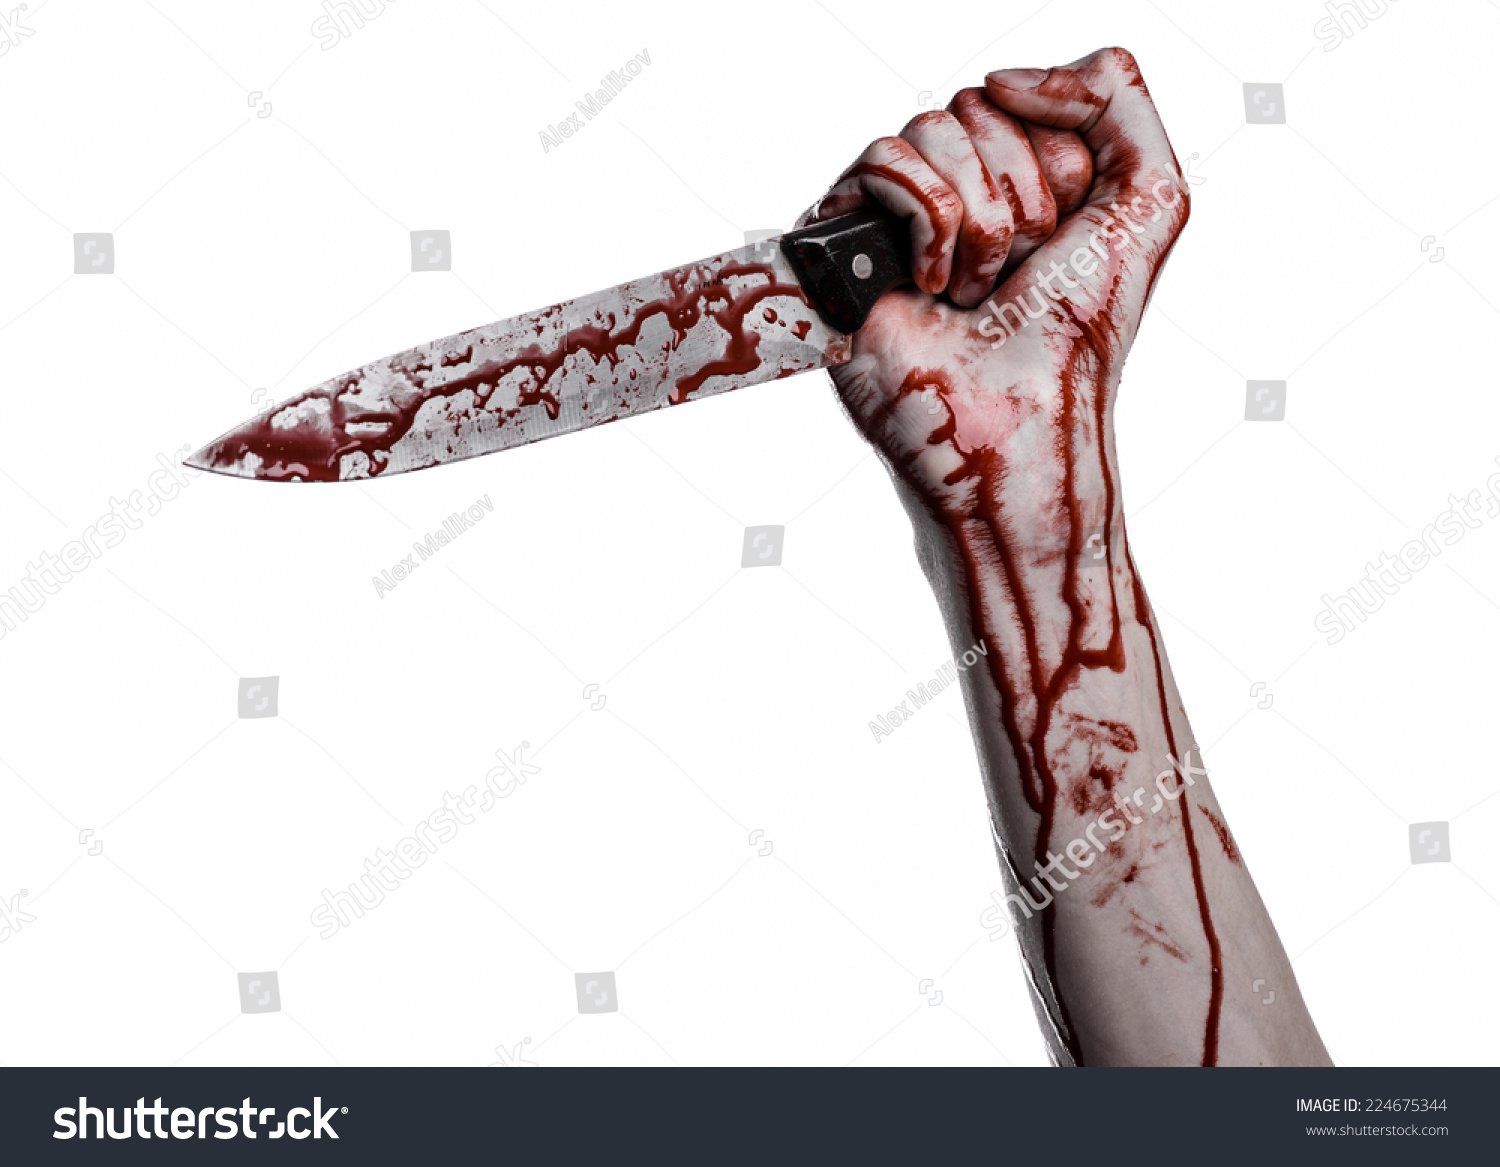 bloody hand holding - photo #30